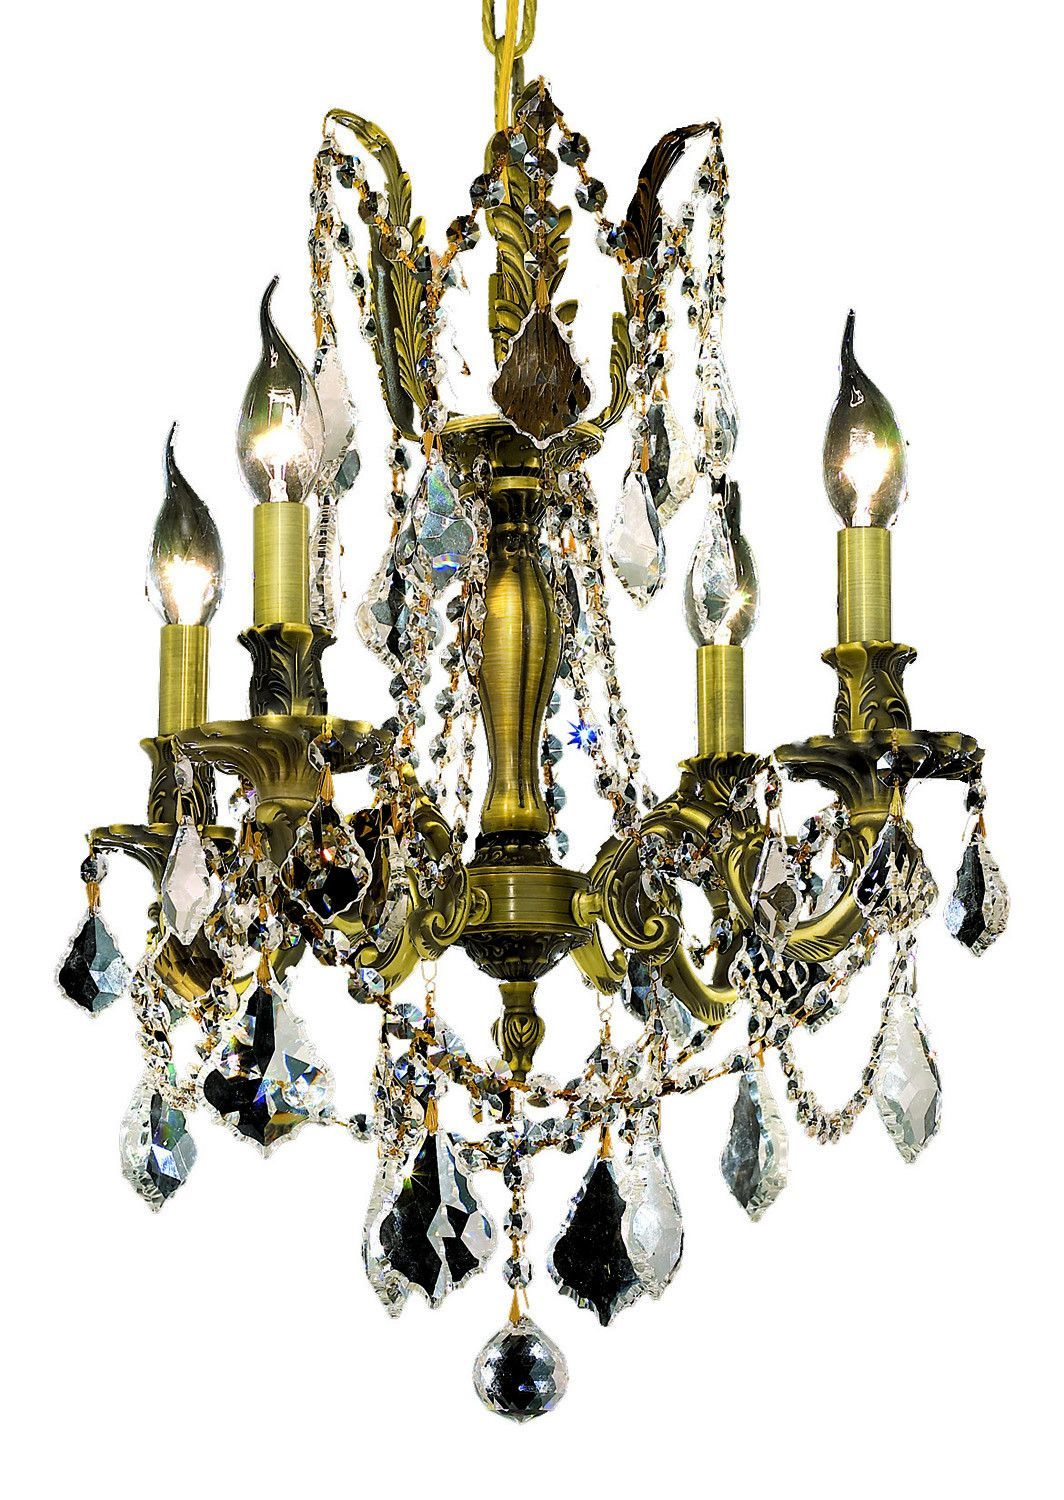 Elegant Lighting - 9204 Rosalia Collection Hanging Fixture D17in H21in Lt:4 Antique Bronze Finish (Royal Cut Crystals)